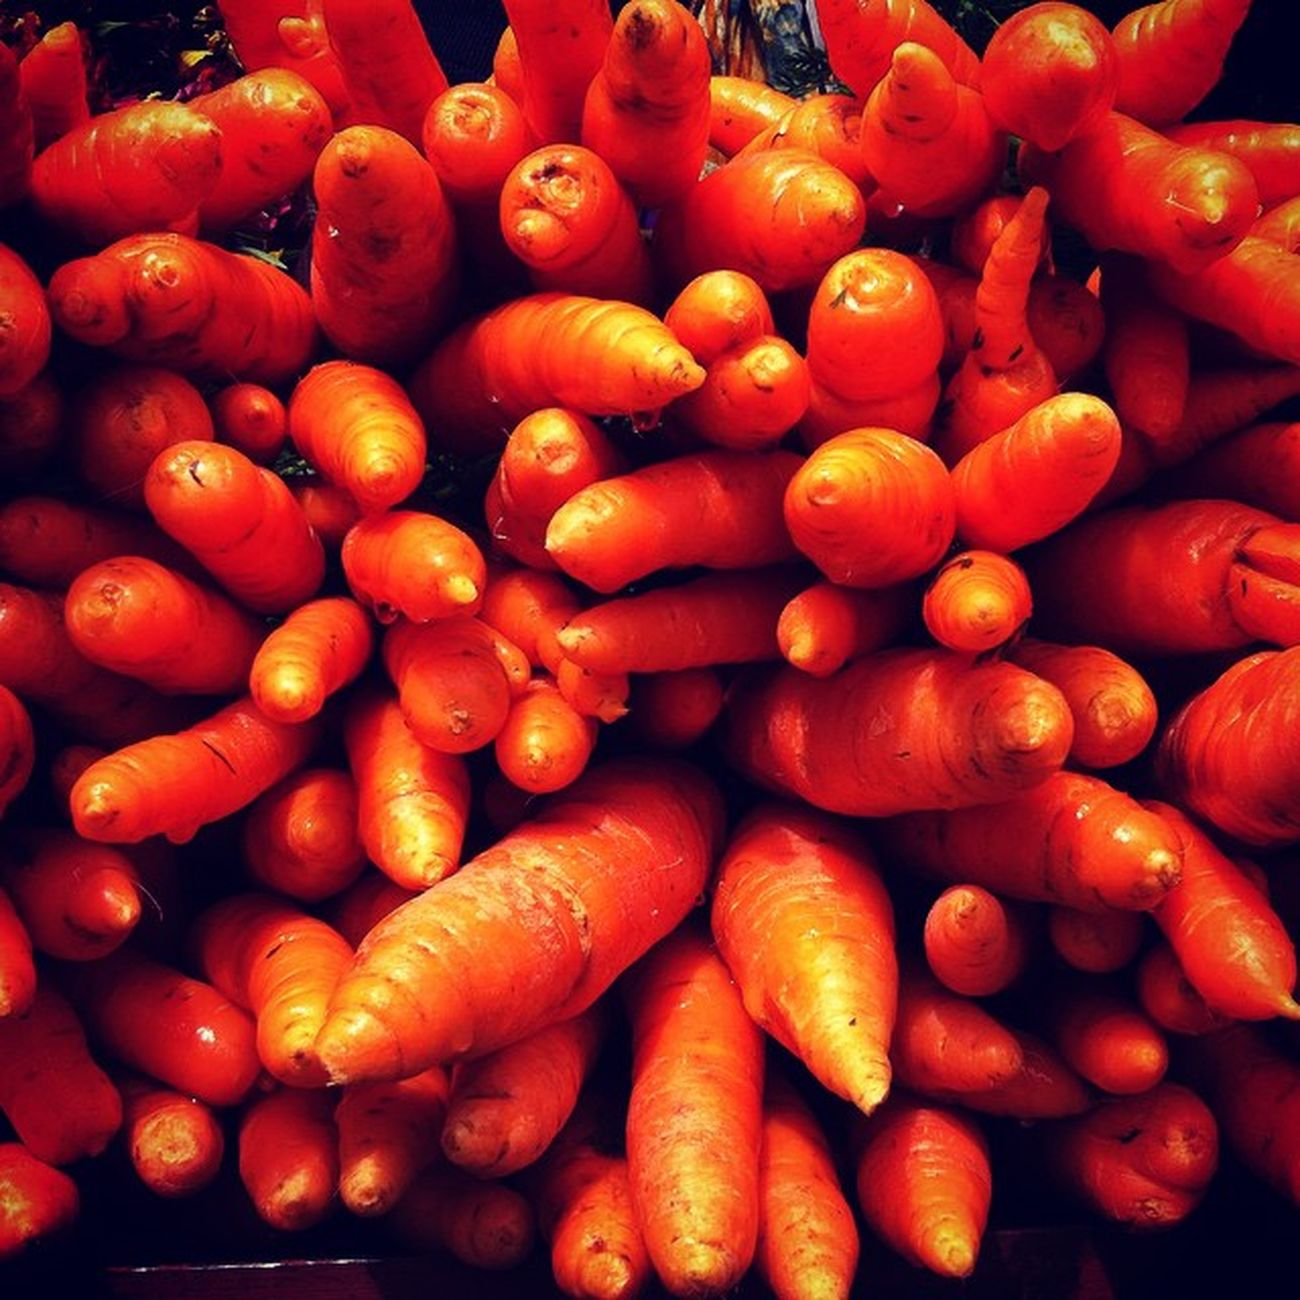 Carrot Vegetables Ooty Random Click Instamysore Instaevening Instaphotography Photooftheday Orange Travel Friends Iphone4 Sunday Road Trip Weekend Rain Tamil India